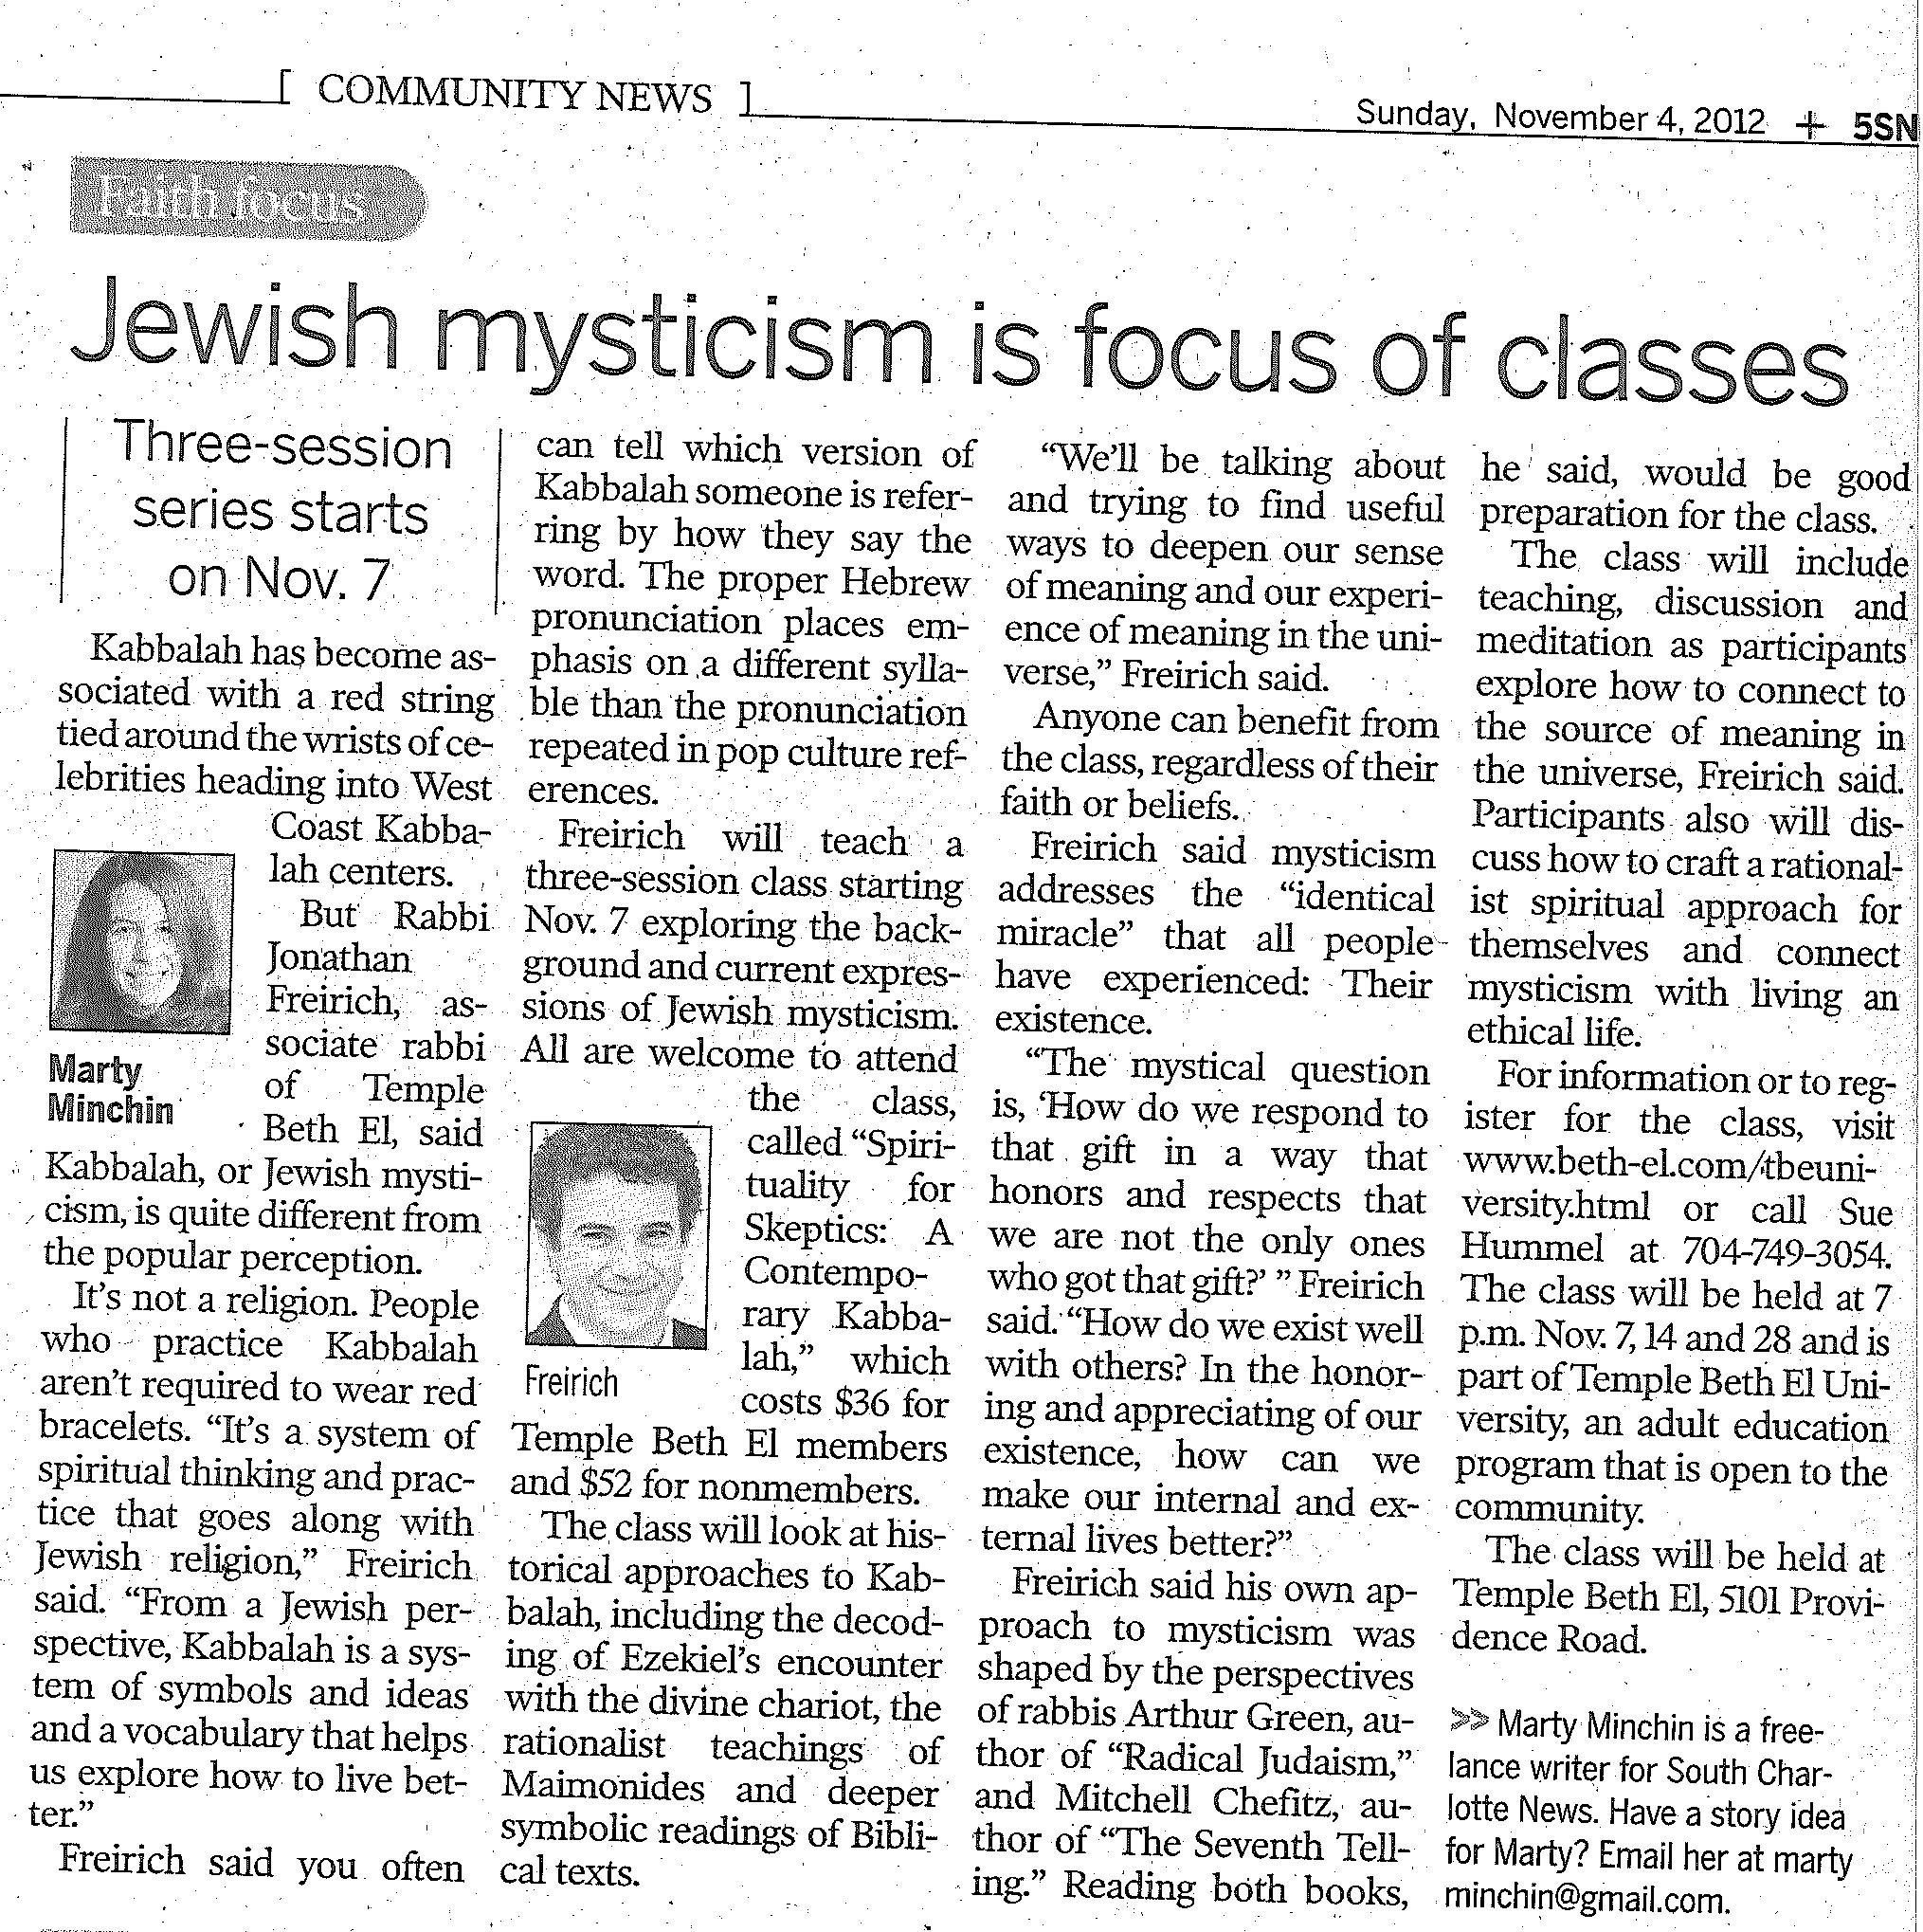 Charlotte Observer covers Jewish mysticism class